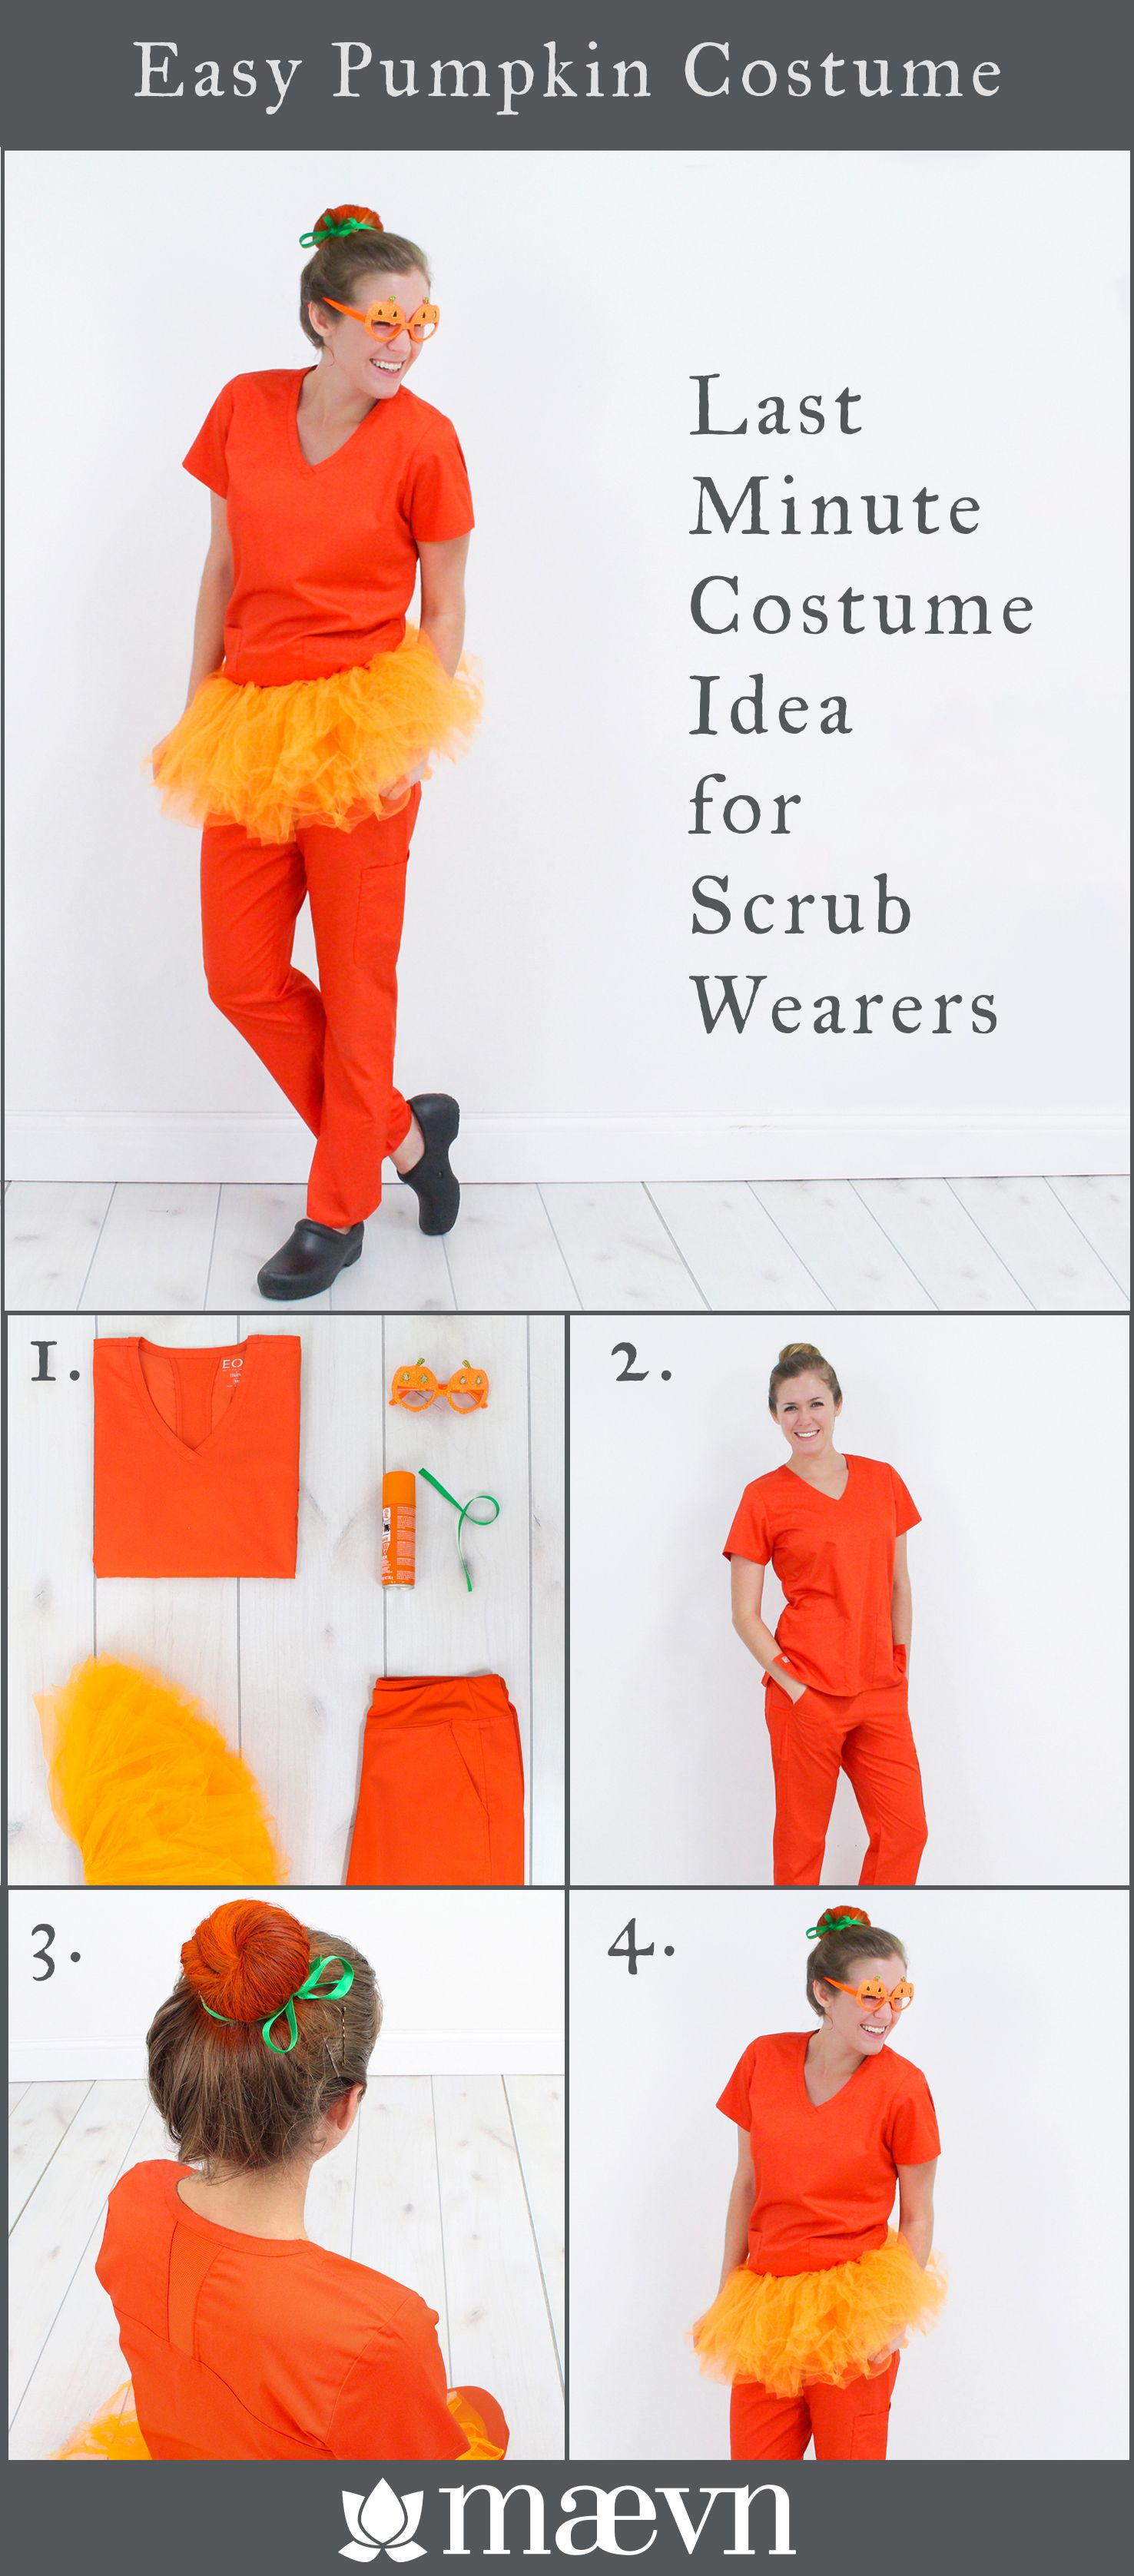 Easy Last Minute Halloween Costume Idea For Scrub Wearers Anyone In The Medical Field Can Halloween Costumes For Work Nurse Halloween Costume Pumpkin Costume